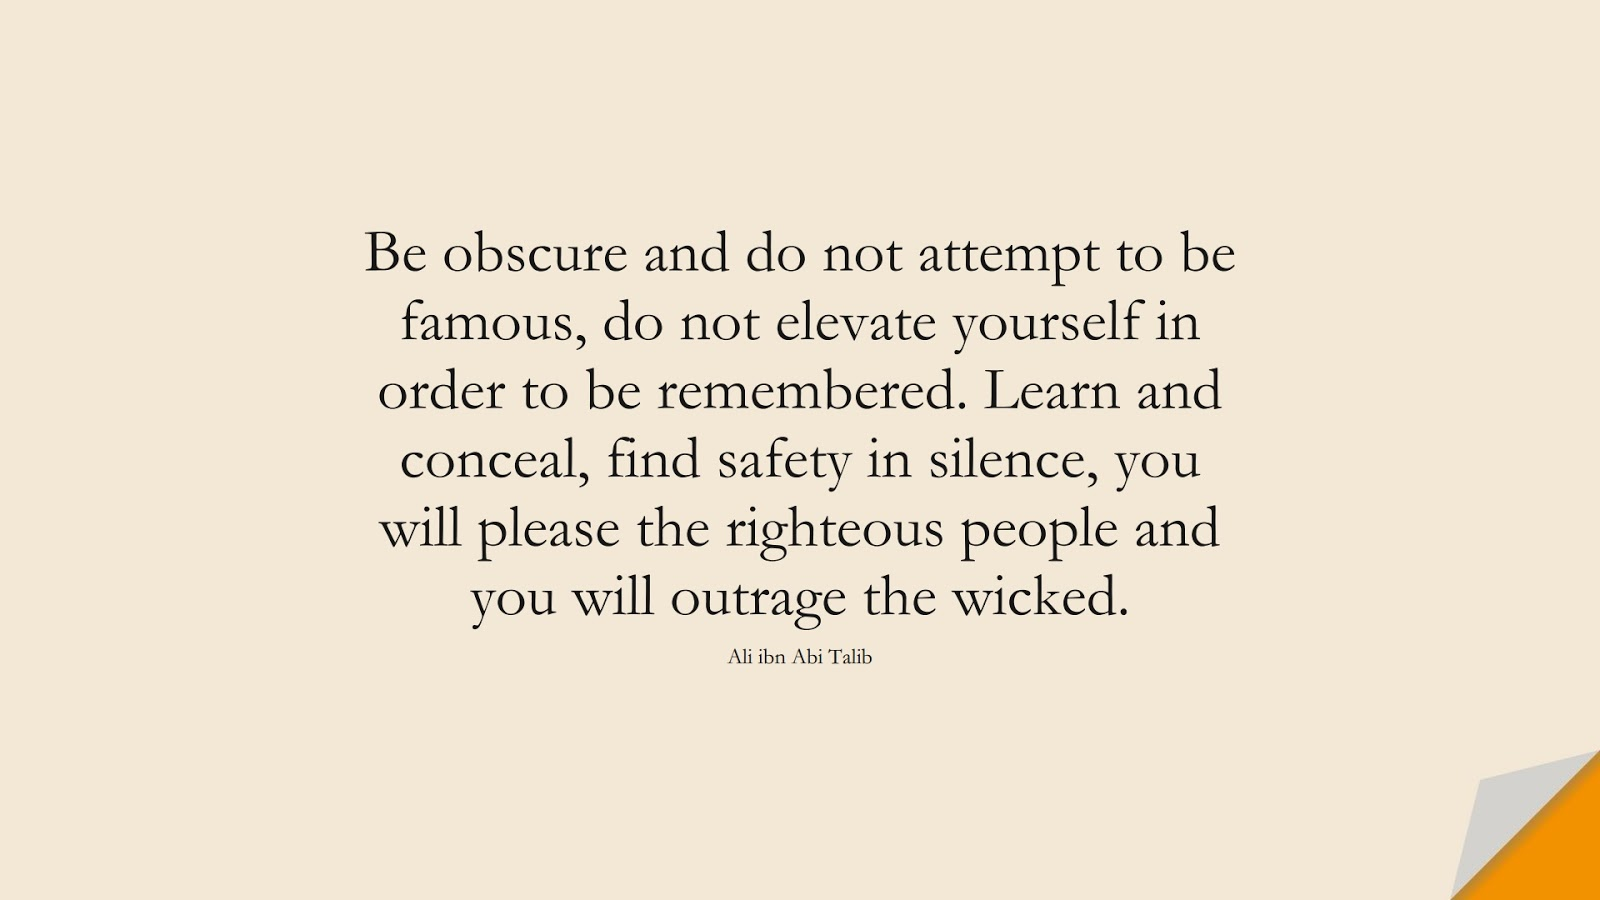 Be obscure and do not attempt to be famous, do not elevate yourself in order to be remembered. Learn and conceal, find safety in silence, you will please the righteous people and you will outrage the wicked. (Ali ibn Abi Talib);  #AliQuotes